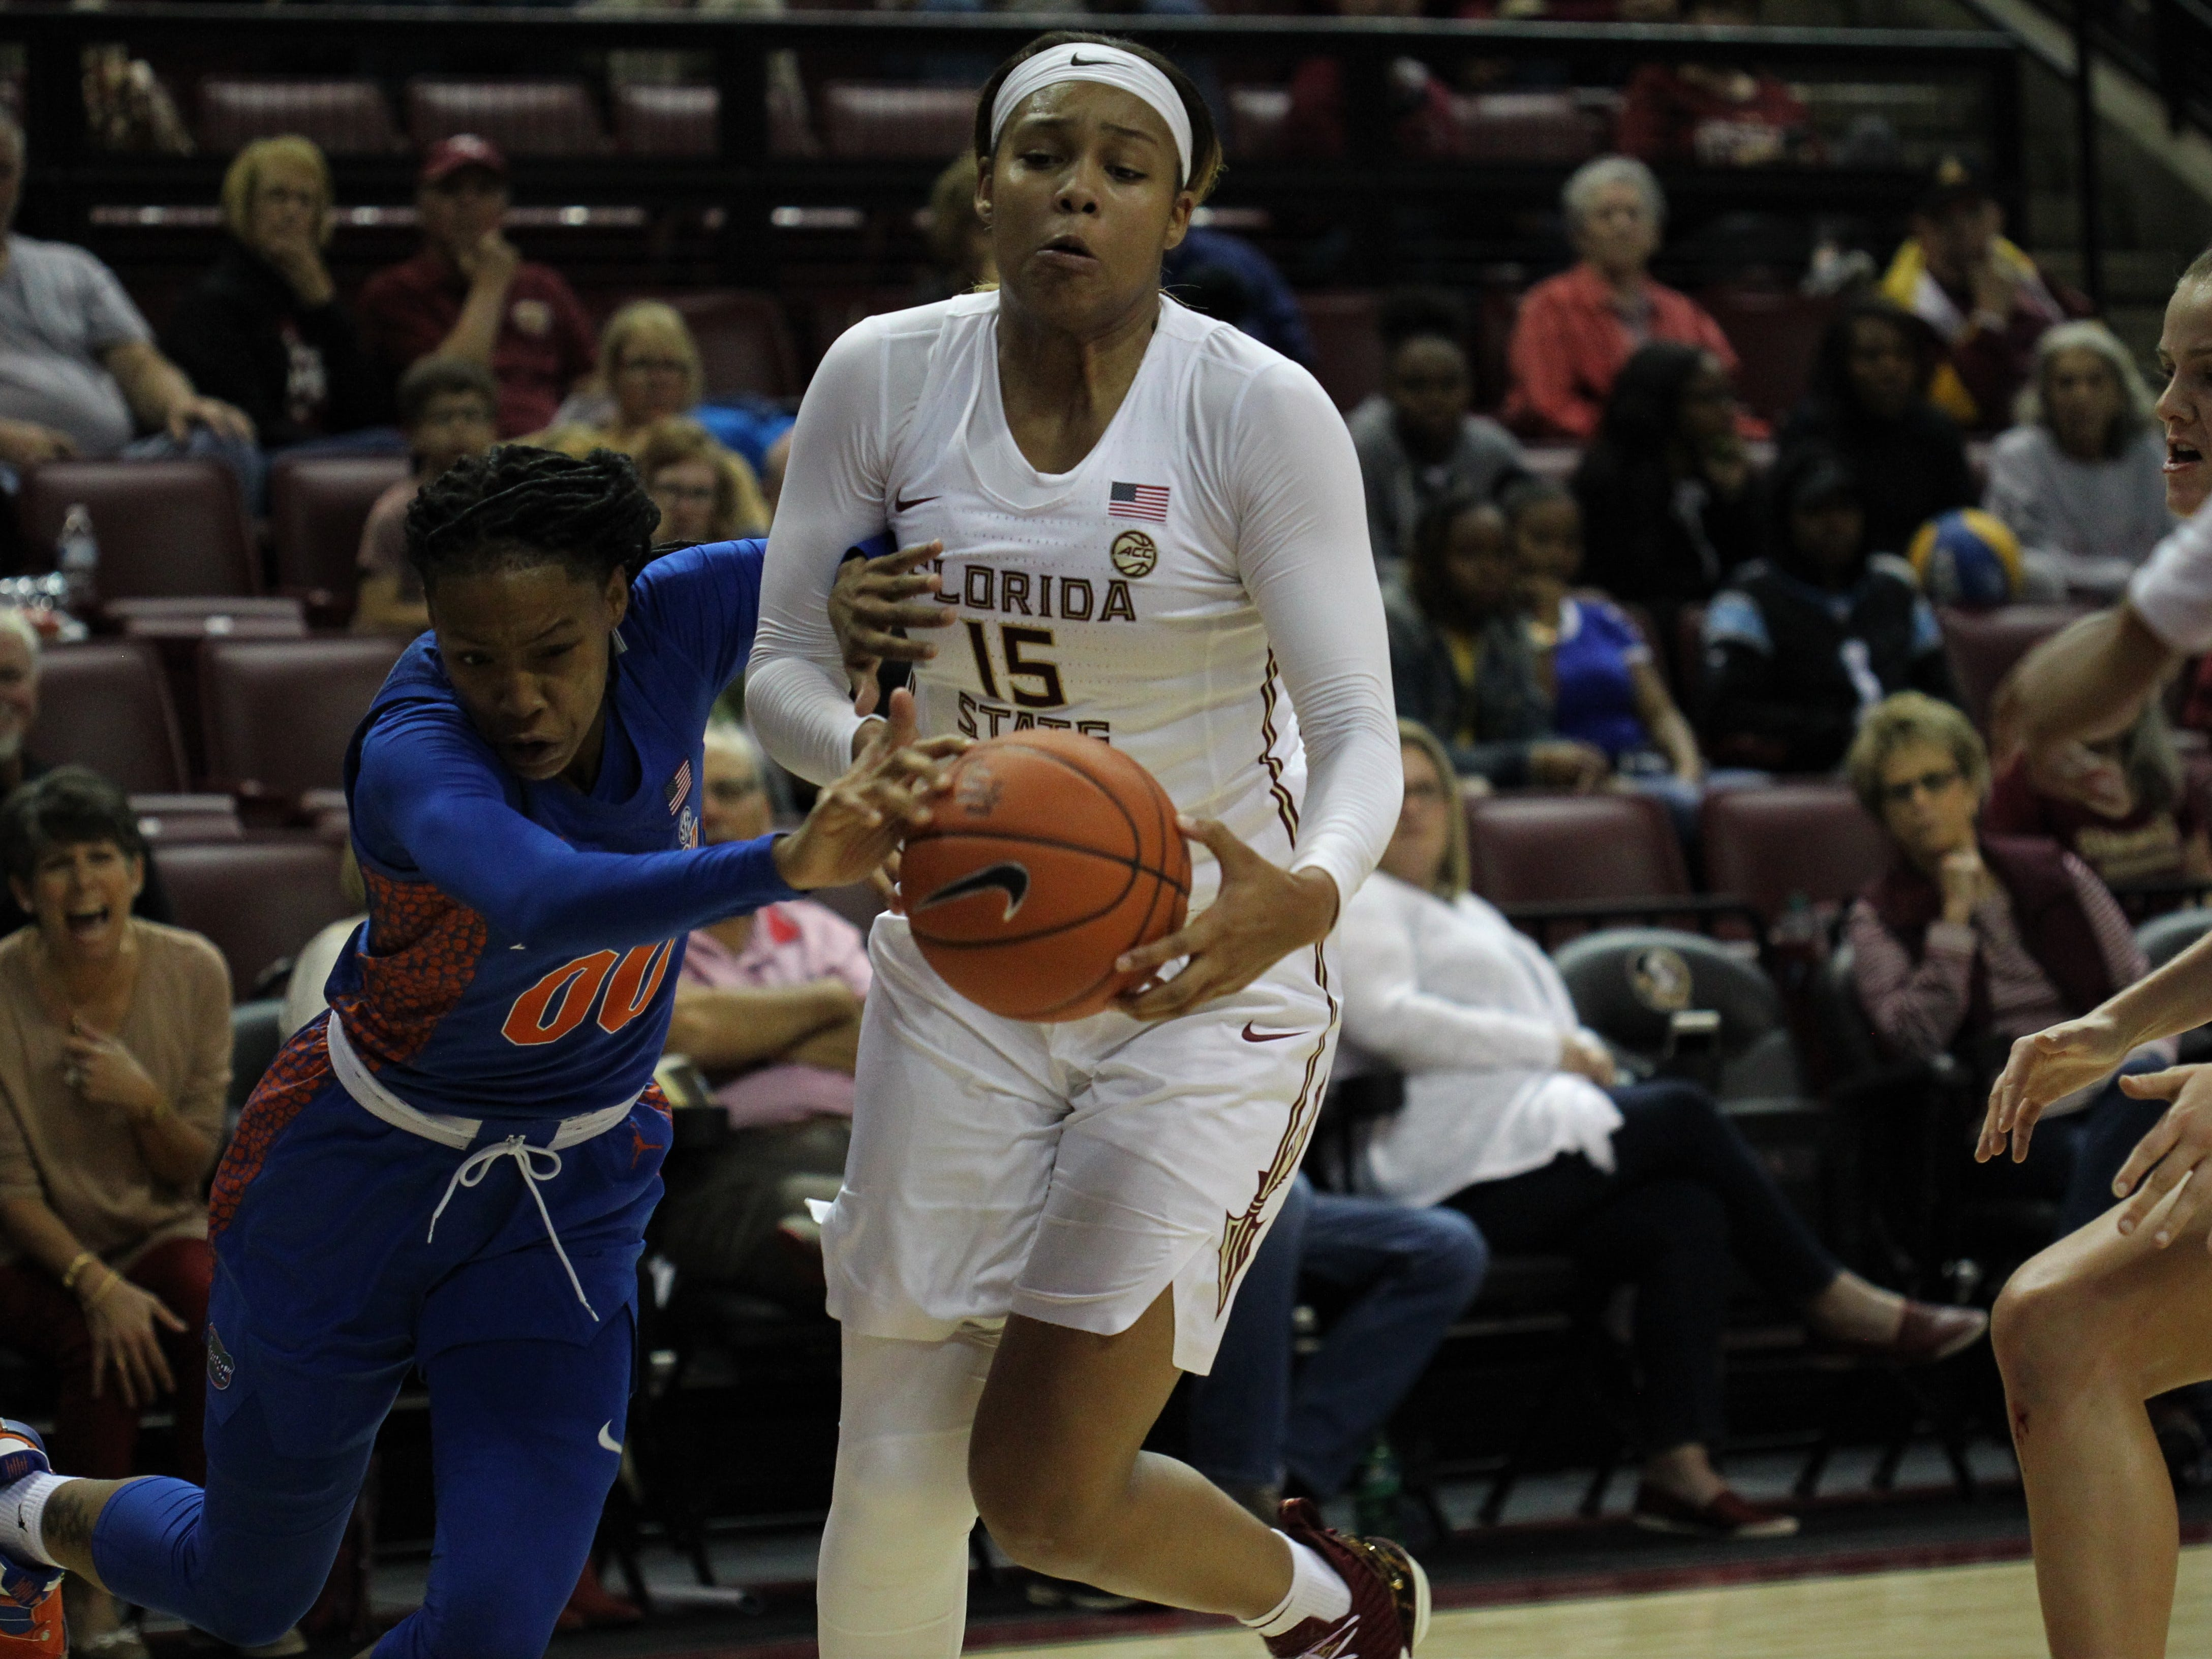 Florida State's Kiah Gillespie and UF's Delicia Washington fight for a loose ball during the second half of the Seminoles' game against Florida at the Tucker Civic Center on Nov. 11, 2018.